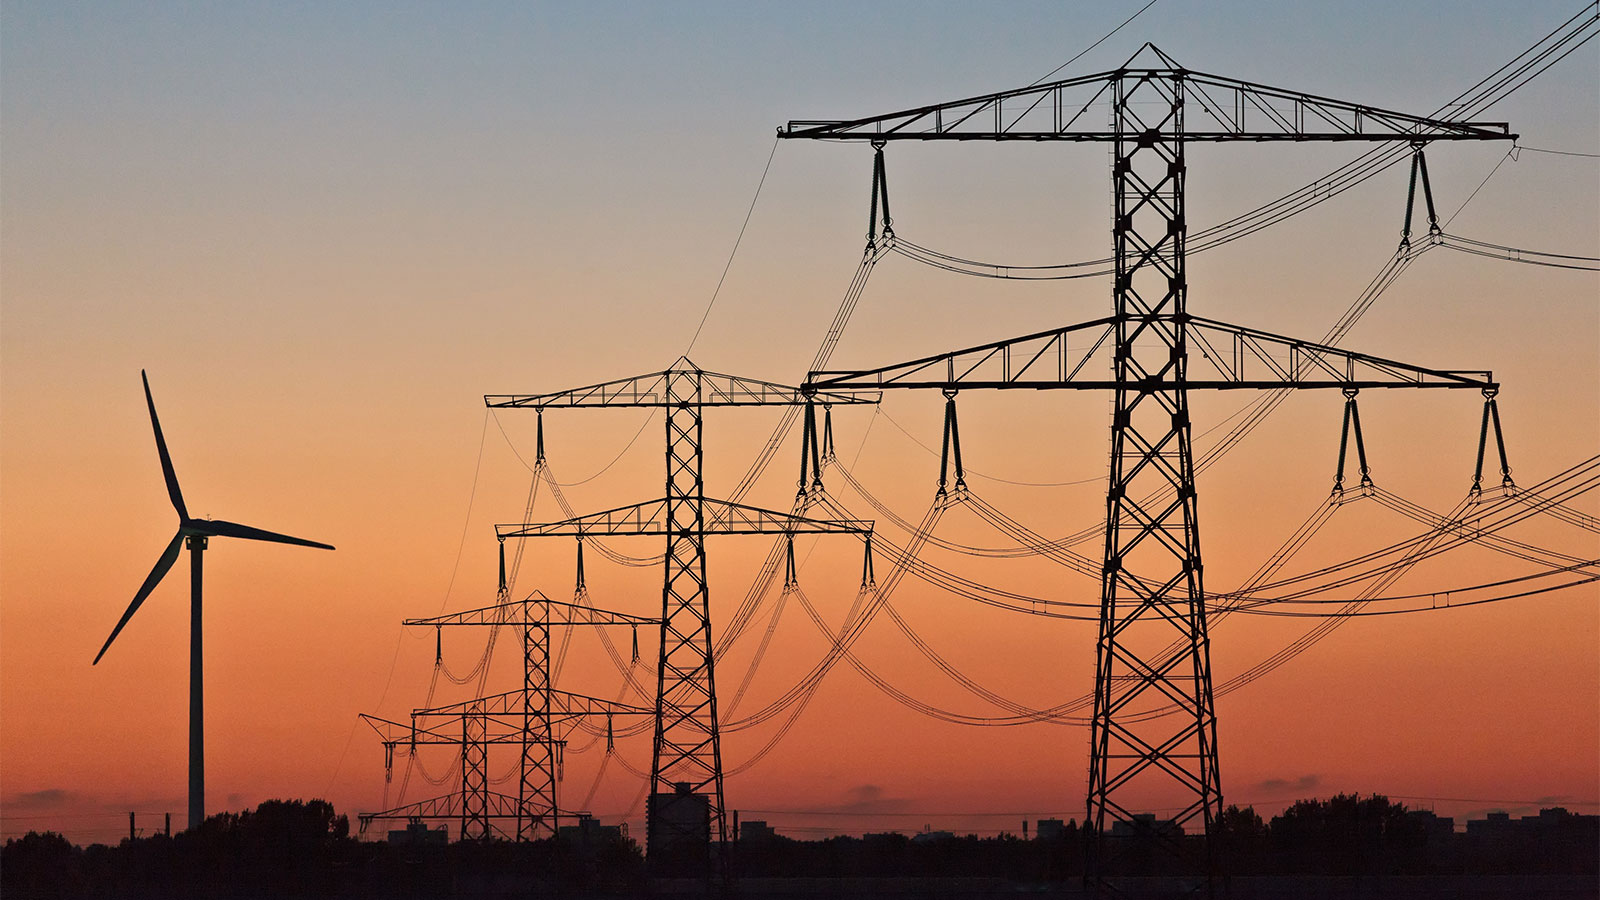 Wind turbines & electrical wires